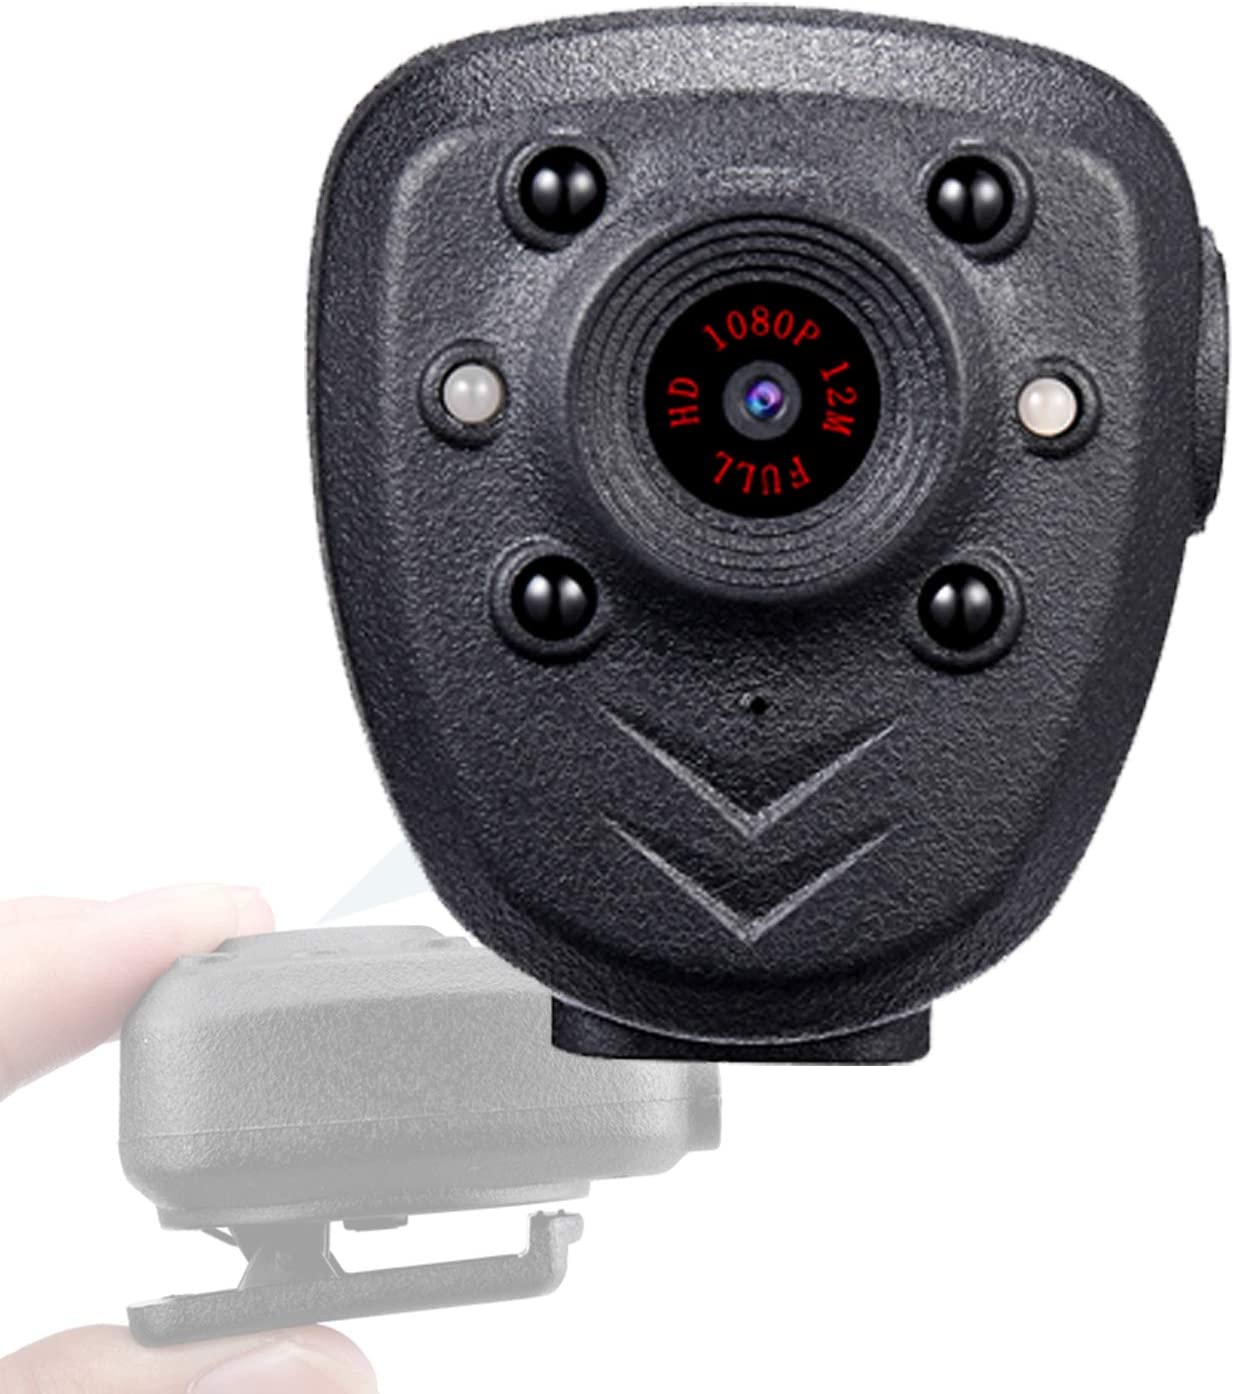 HD 1080P Spy Camera,Car Key Camera,with 32GB Memory Card,2 Hours Video Taking Battery Life,for Business Conference and Security Hidden Camera